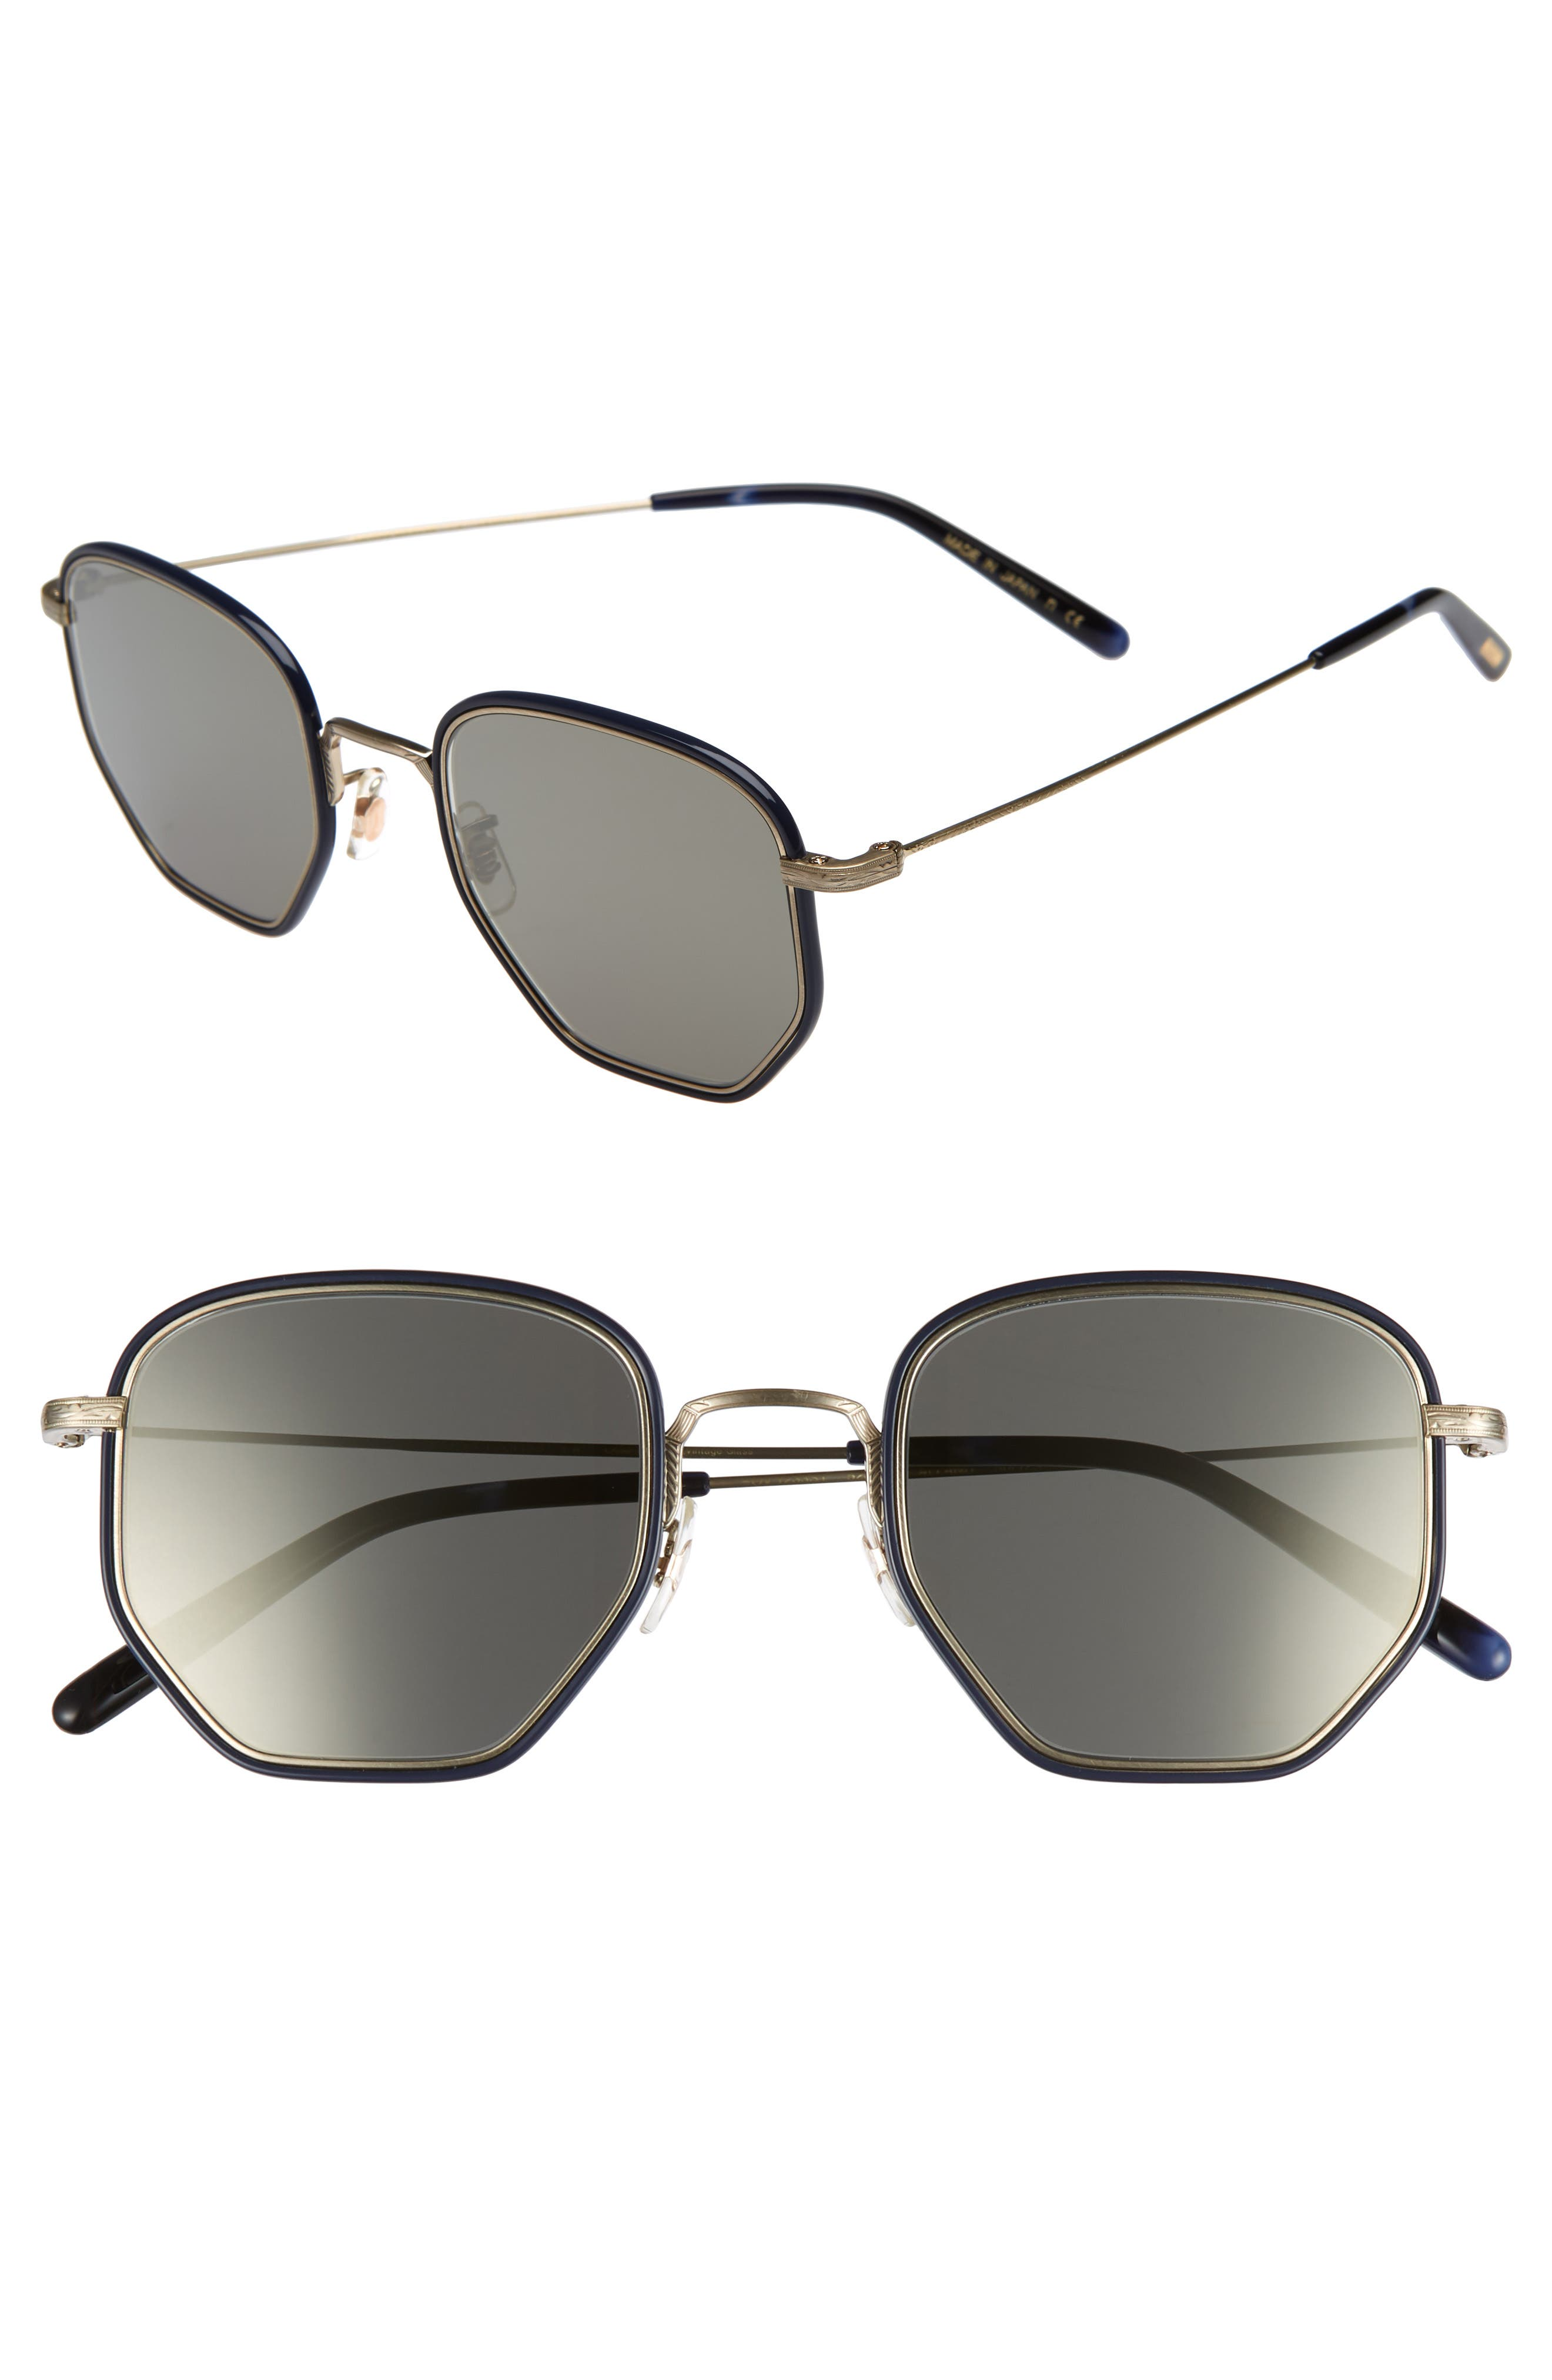 Alland 50mm Sunglasses,                         Main,                         color, Navy/ Brushed